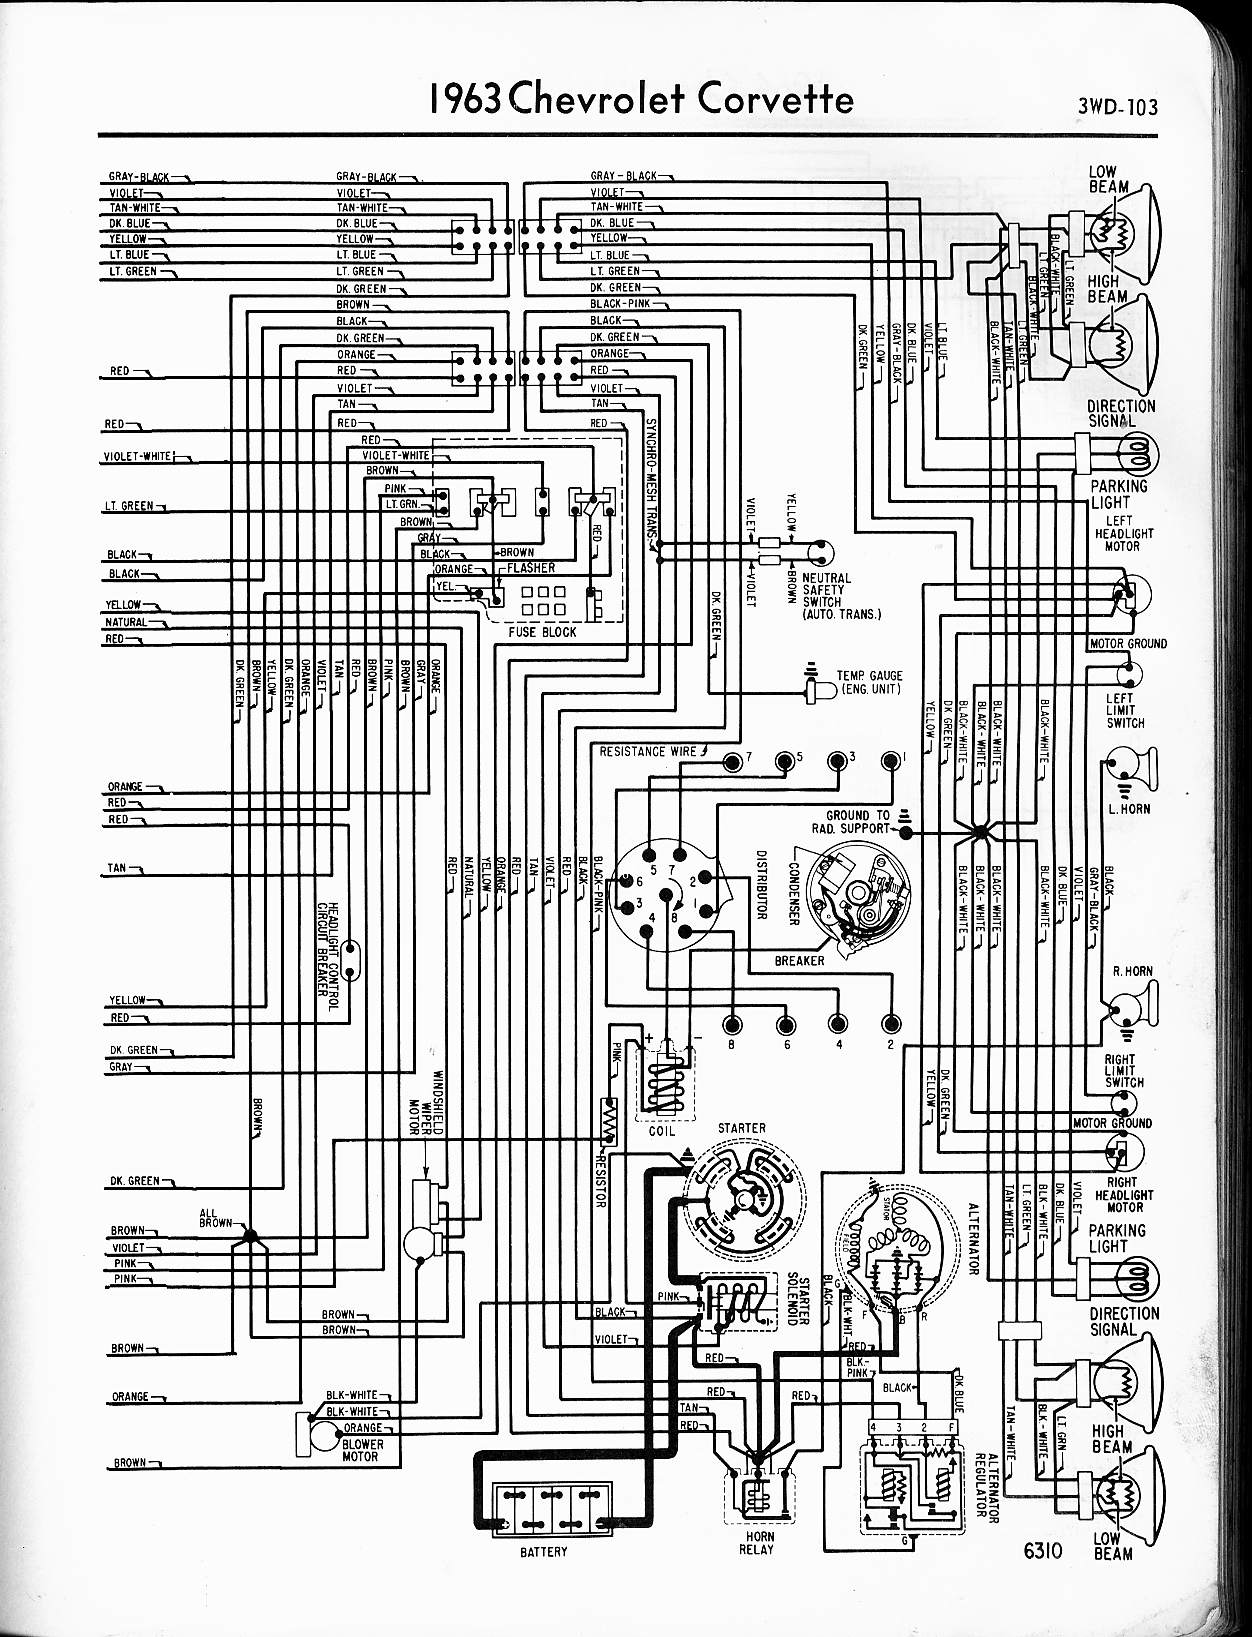 MWireChev63_3WD 103 57 65 chevy wiring diagrams corvette wiring schematic at soozxer.org